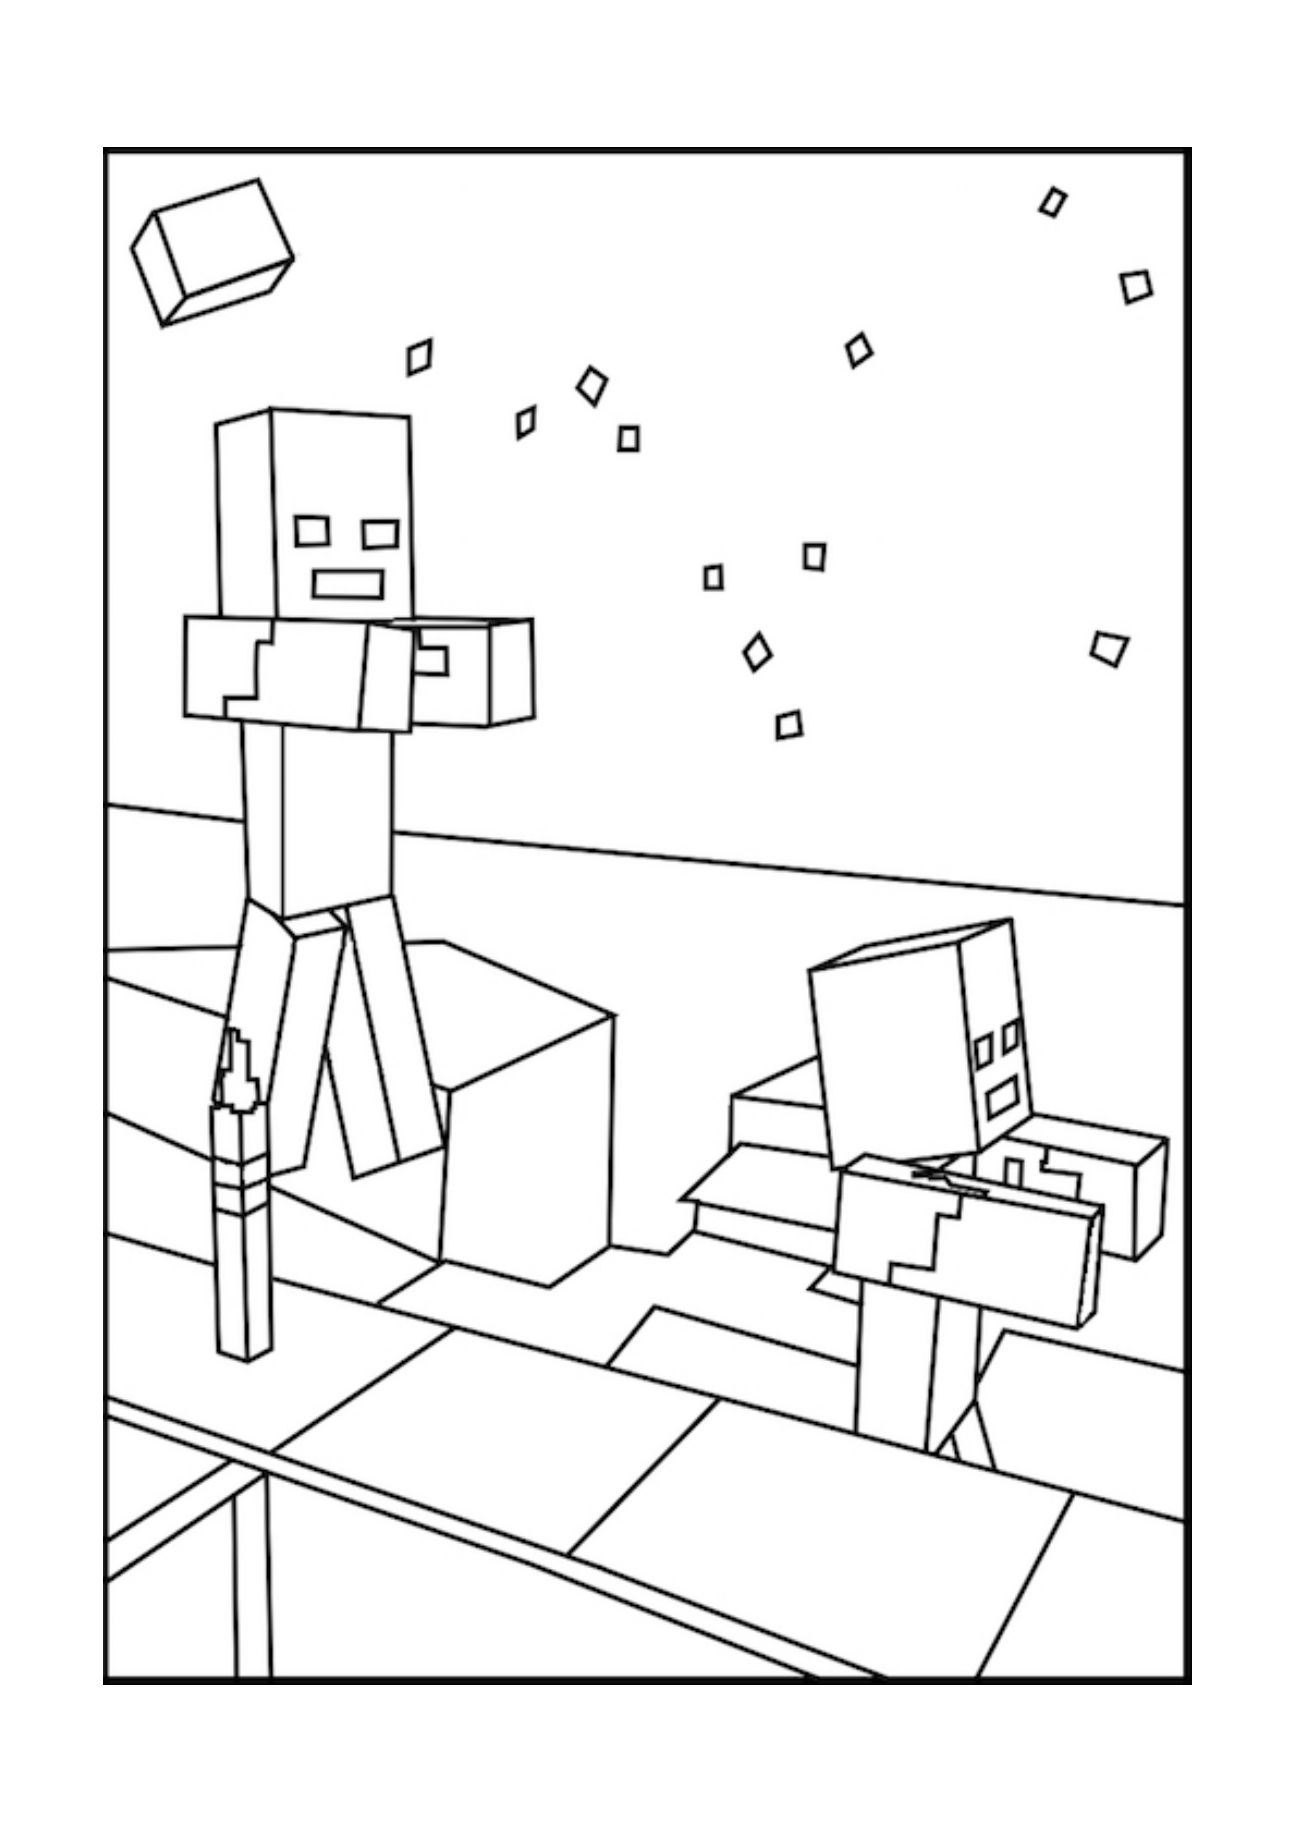 A Minecraft Zombie Coloring Page Coloring Pages Inspirational